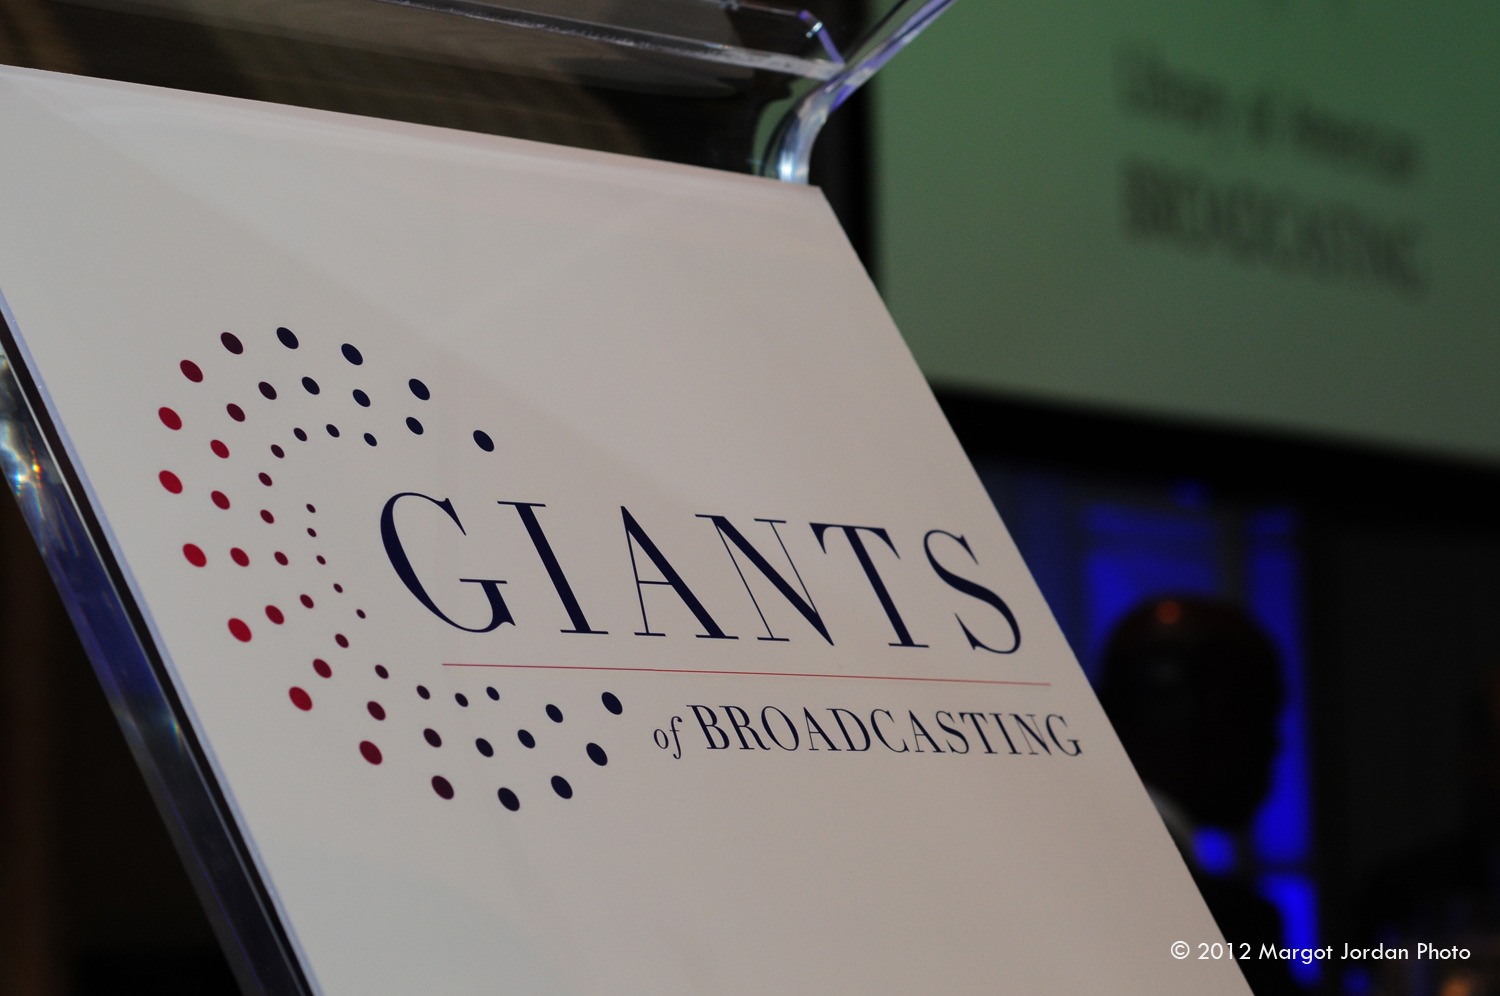 Erica Farber and Don Cornelius Recipients of Giants of Broadcasting Award (pics)